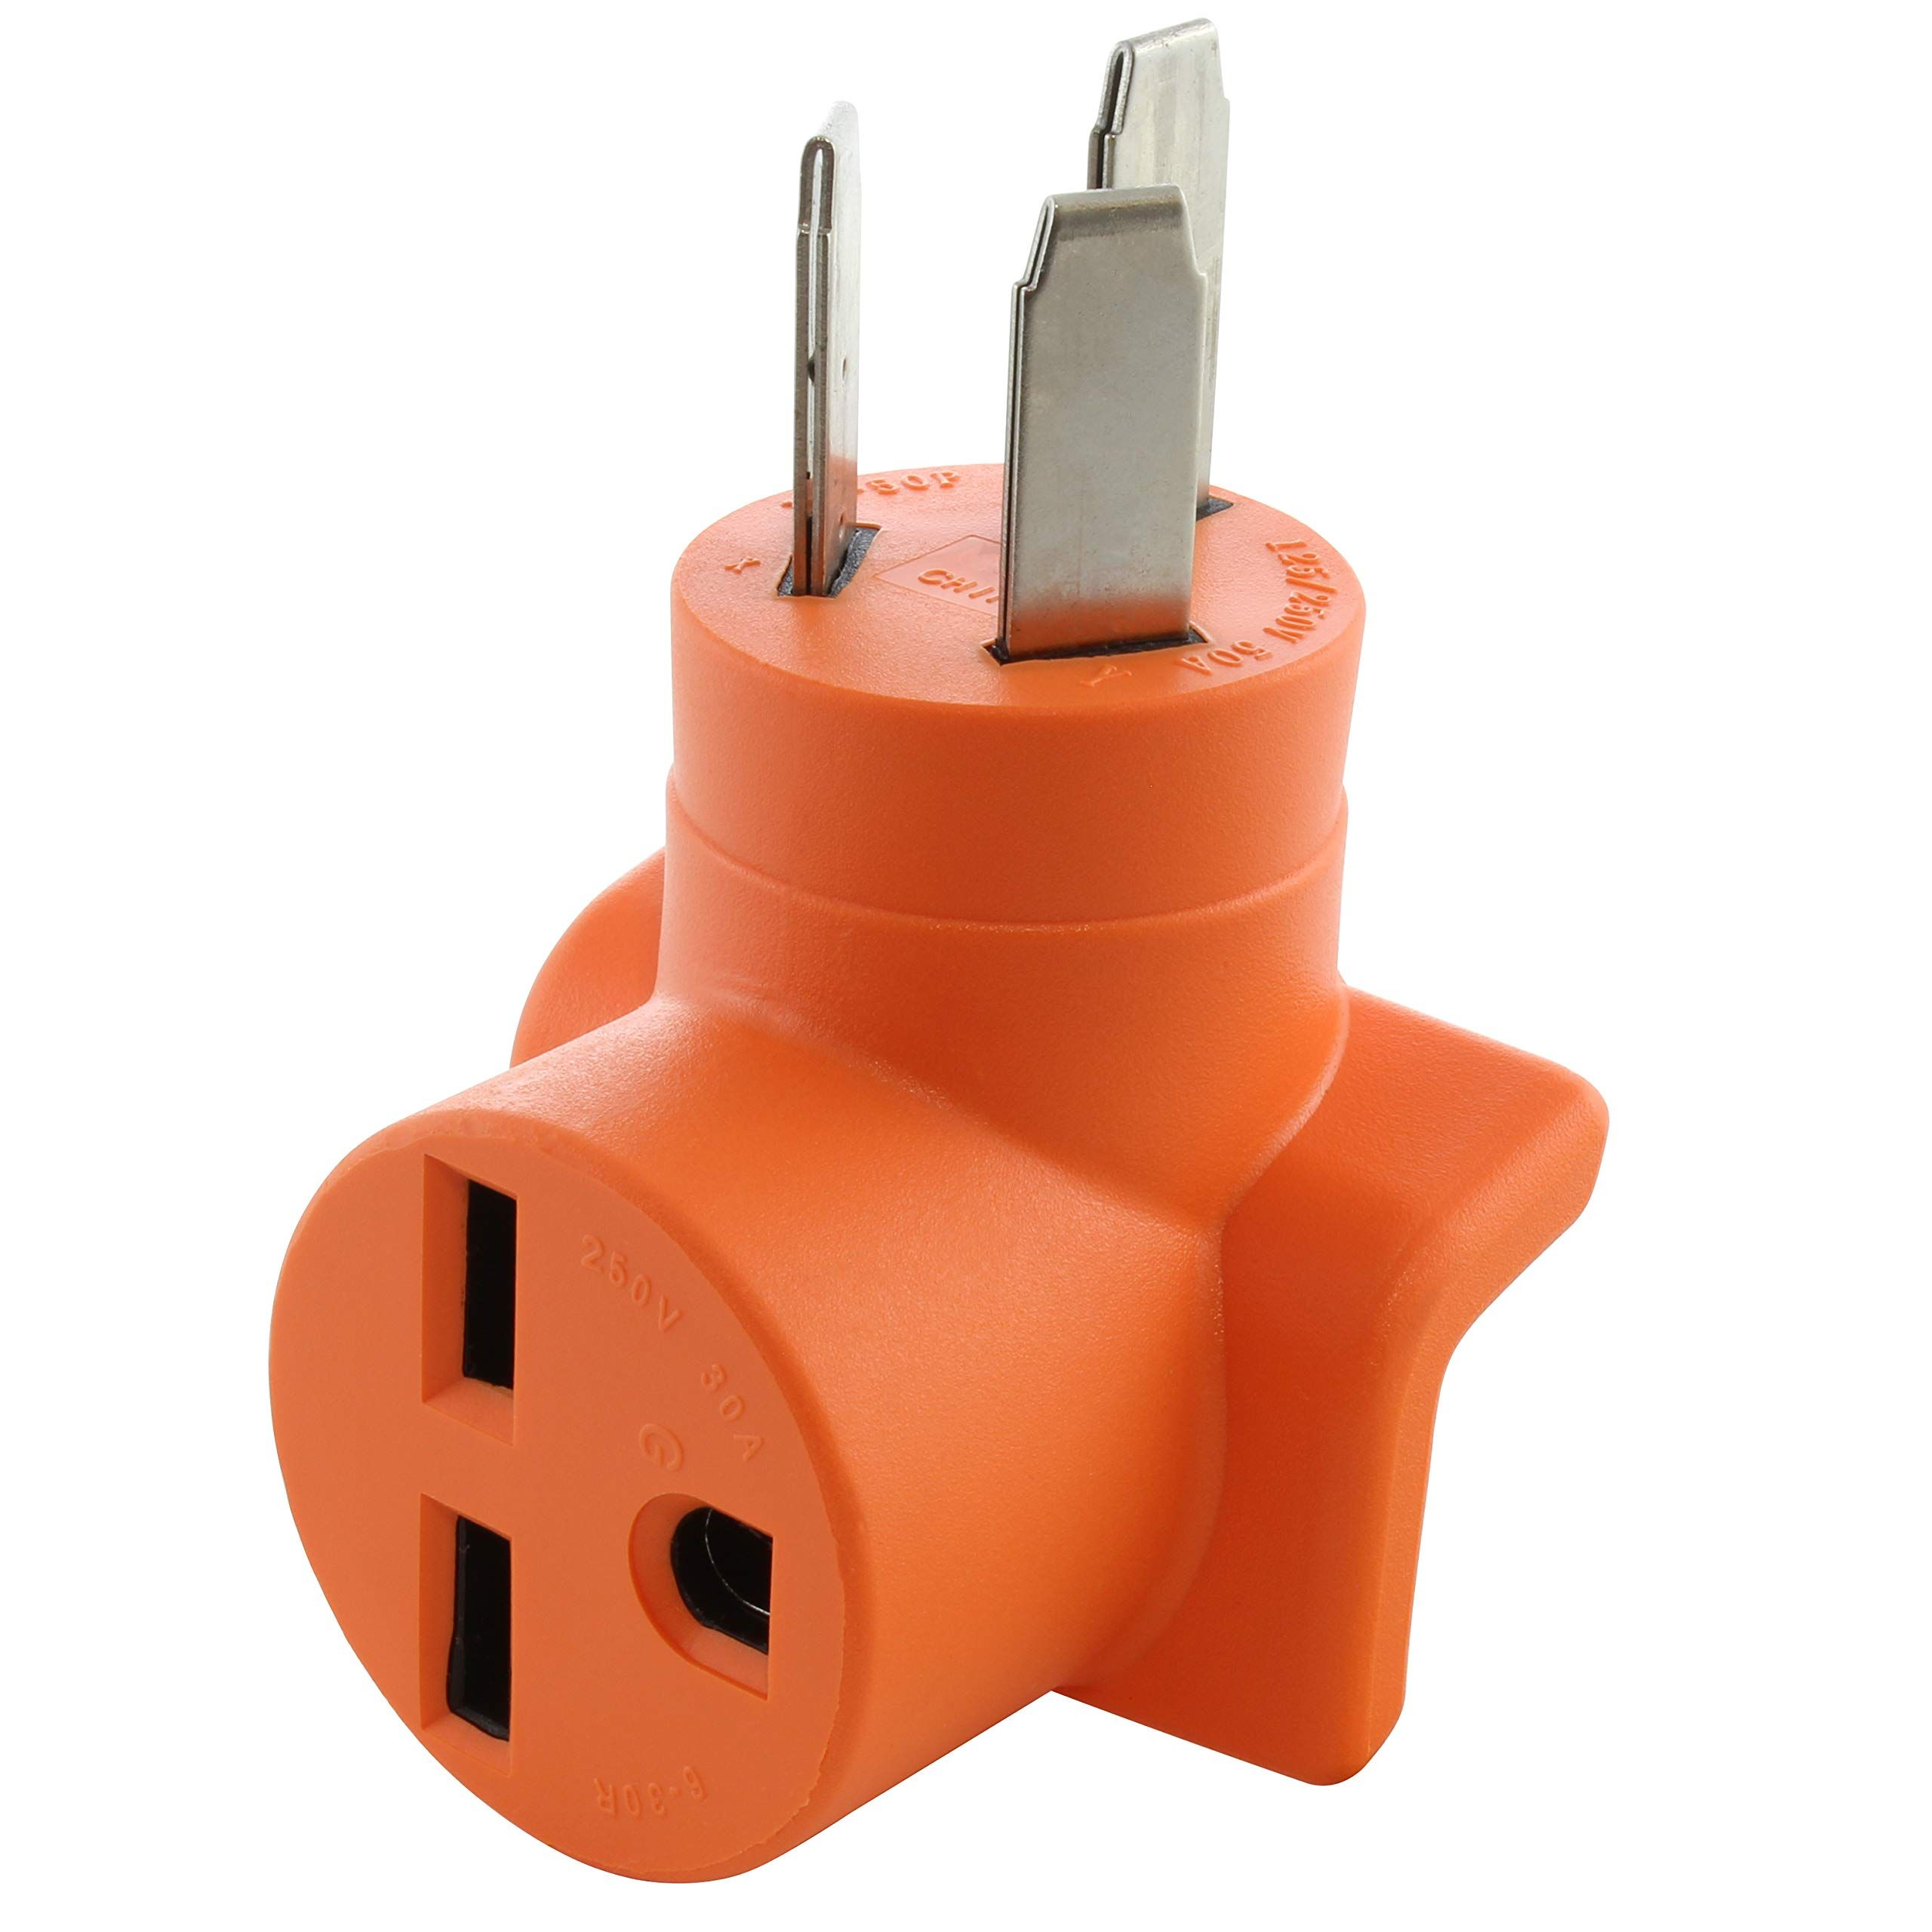 AC WORKS NEMA 1050P 50A 3Prong Plug to NEMA 630R 30A